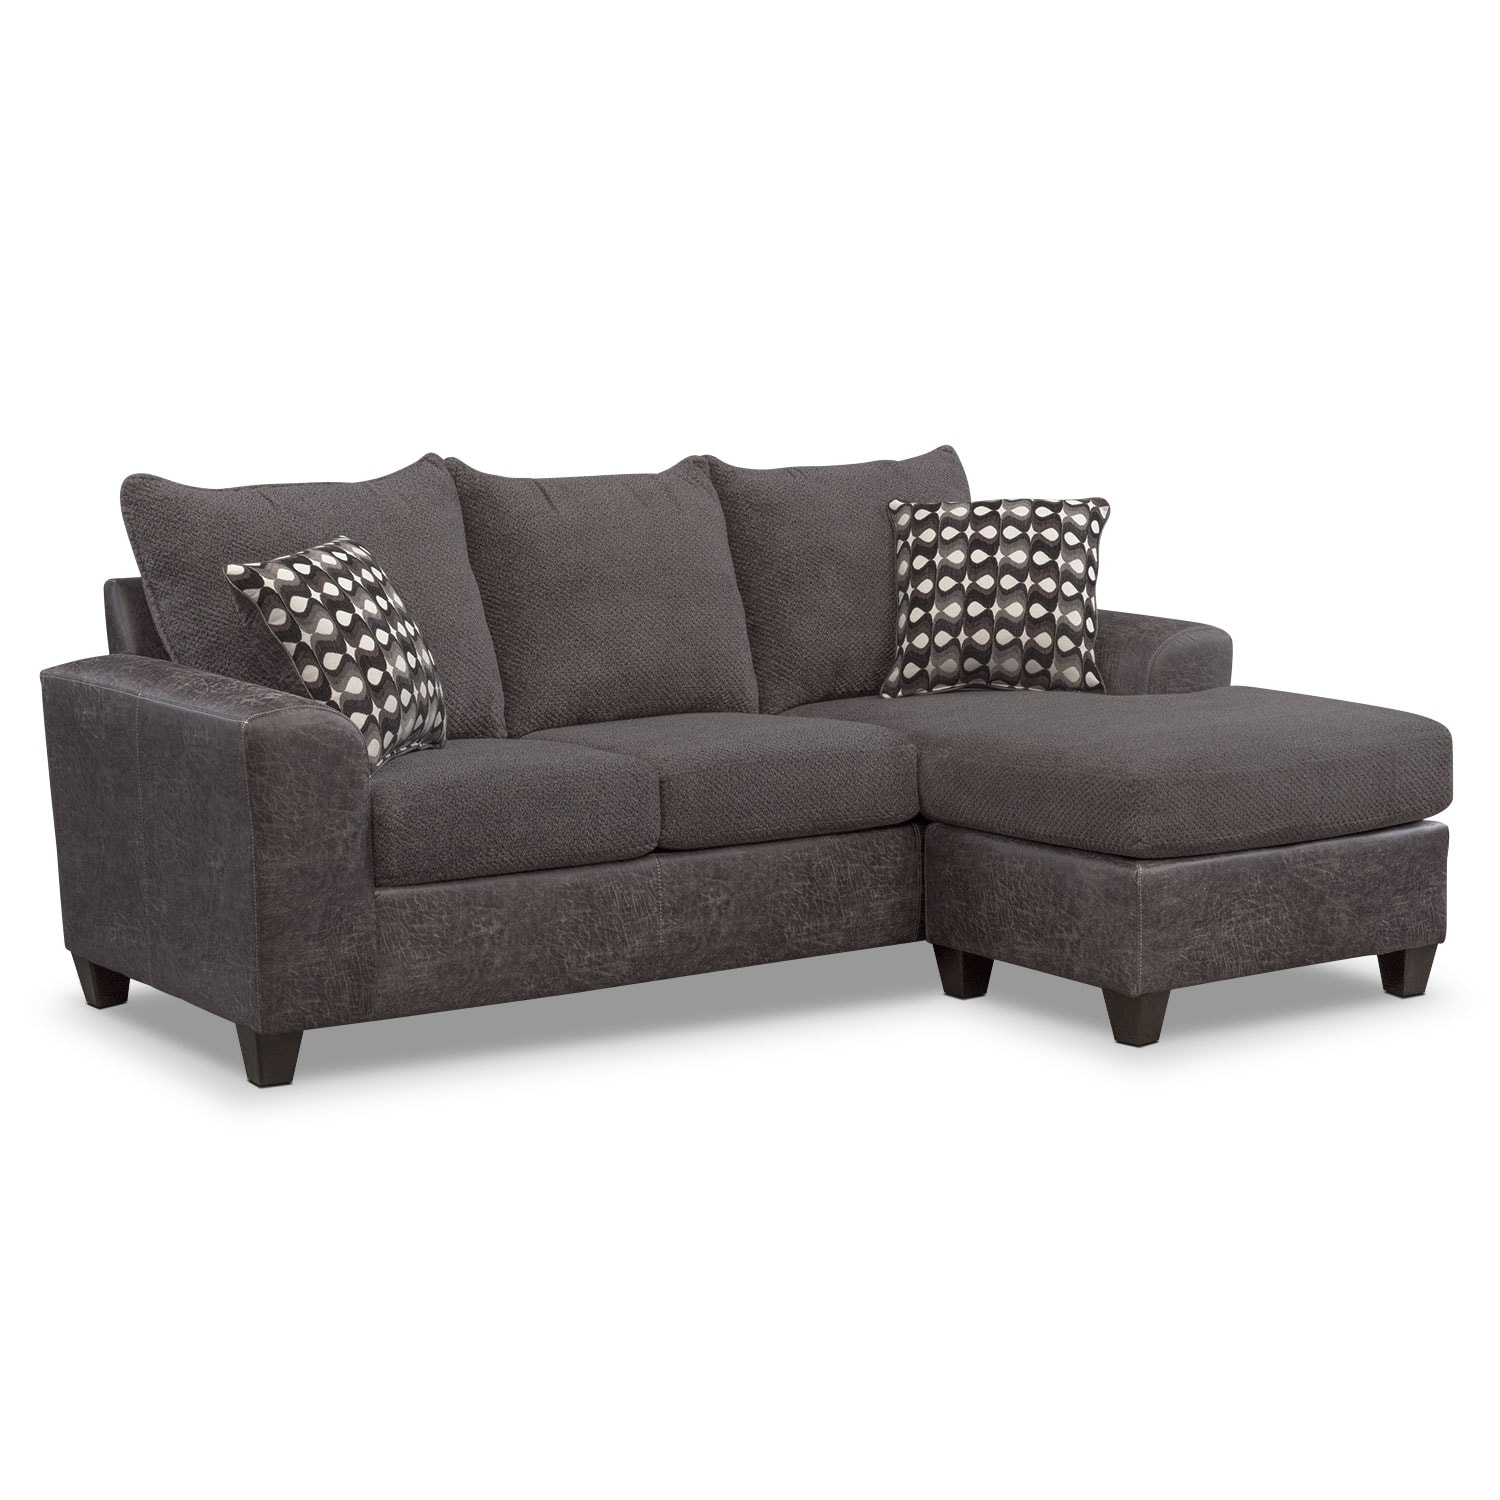 Living Room Couches sofas & couches | living room seating | american signature furniture